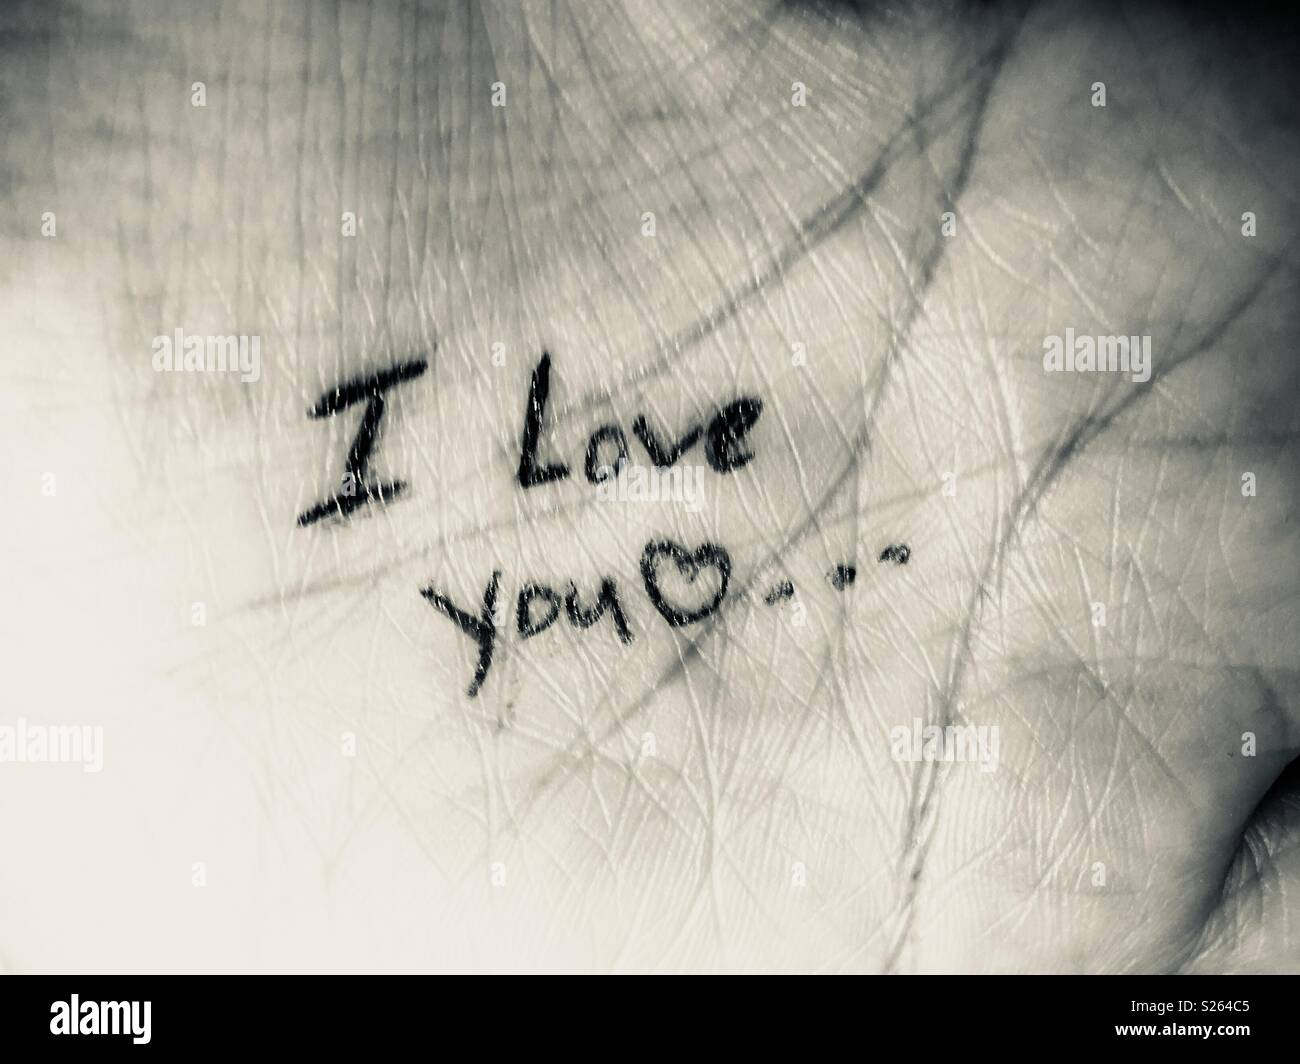 Love note written on a hand. - Stock Image